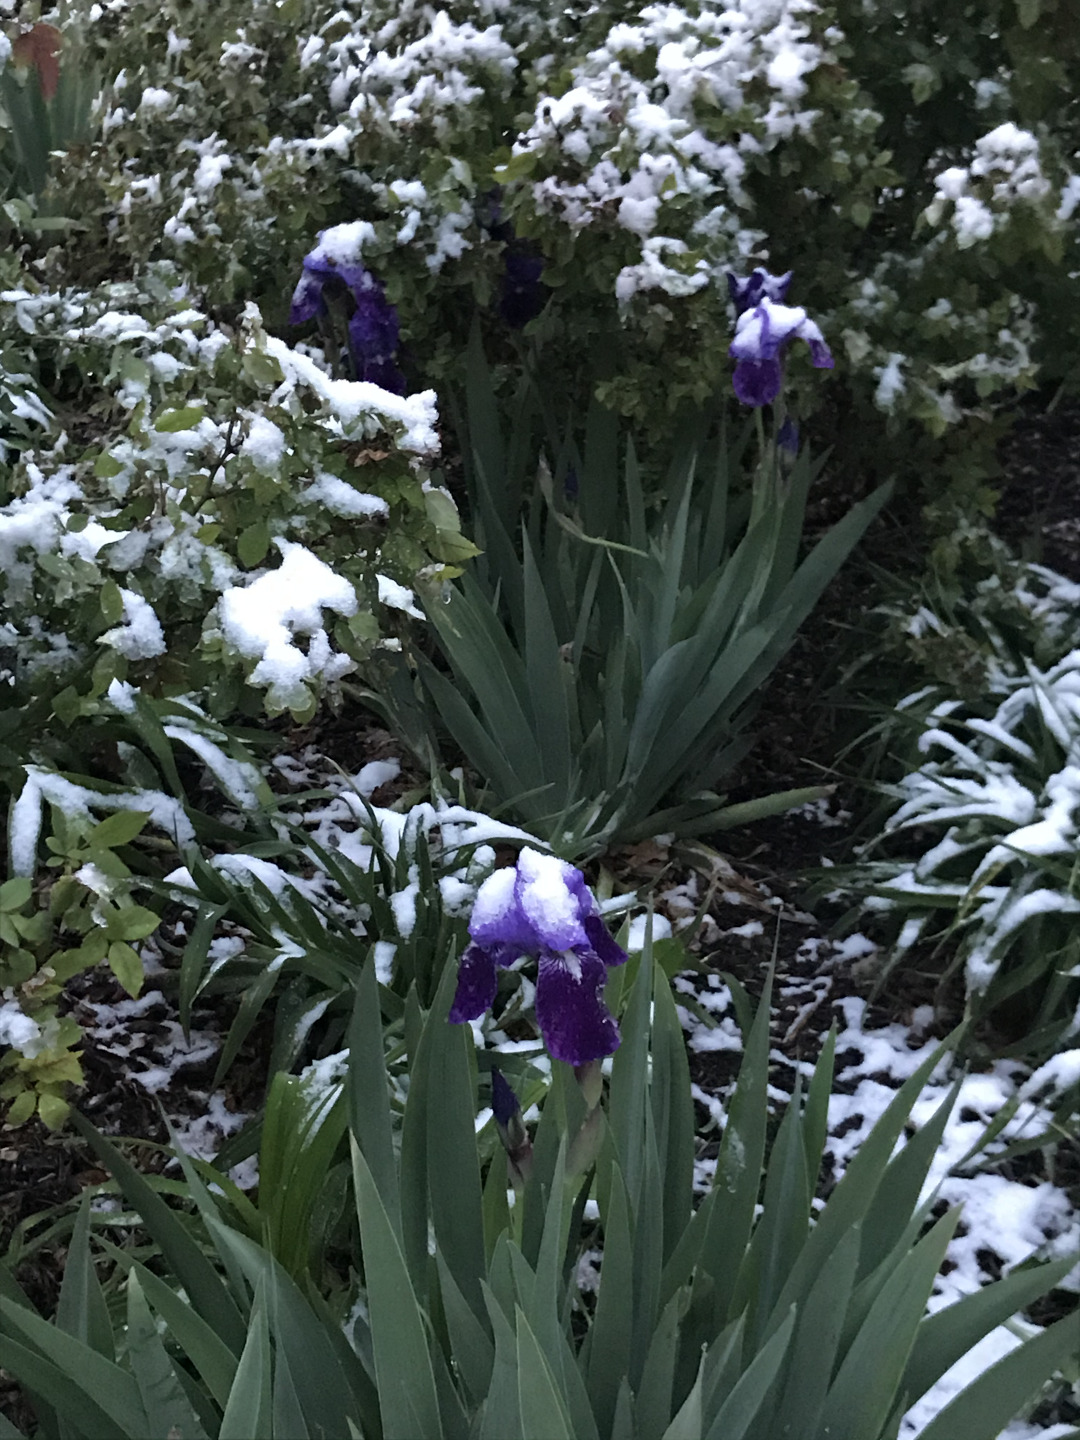 Purple bearded irises covered in snow